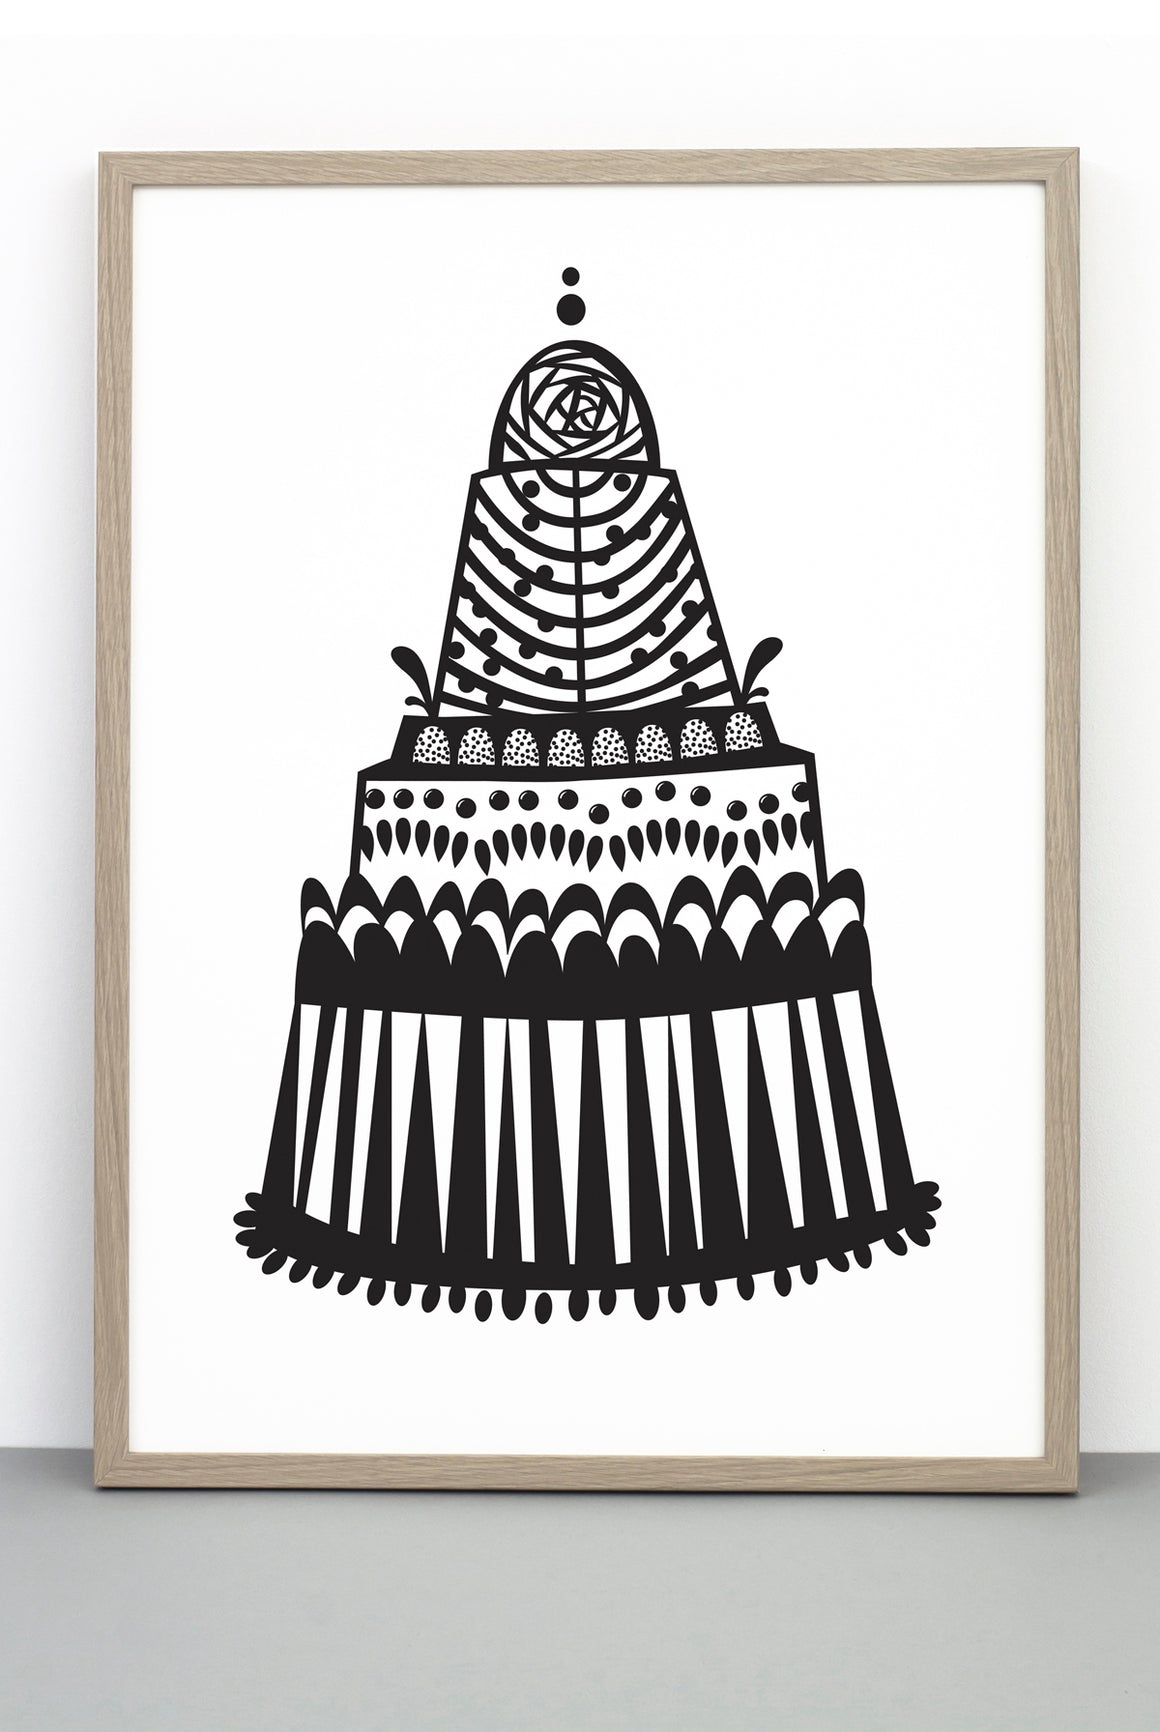 A MOUNT TREAT CAKE PRINT, A BLACK AND WHITE ILLUSTRATIVE POSTER